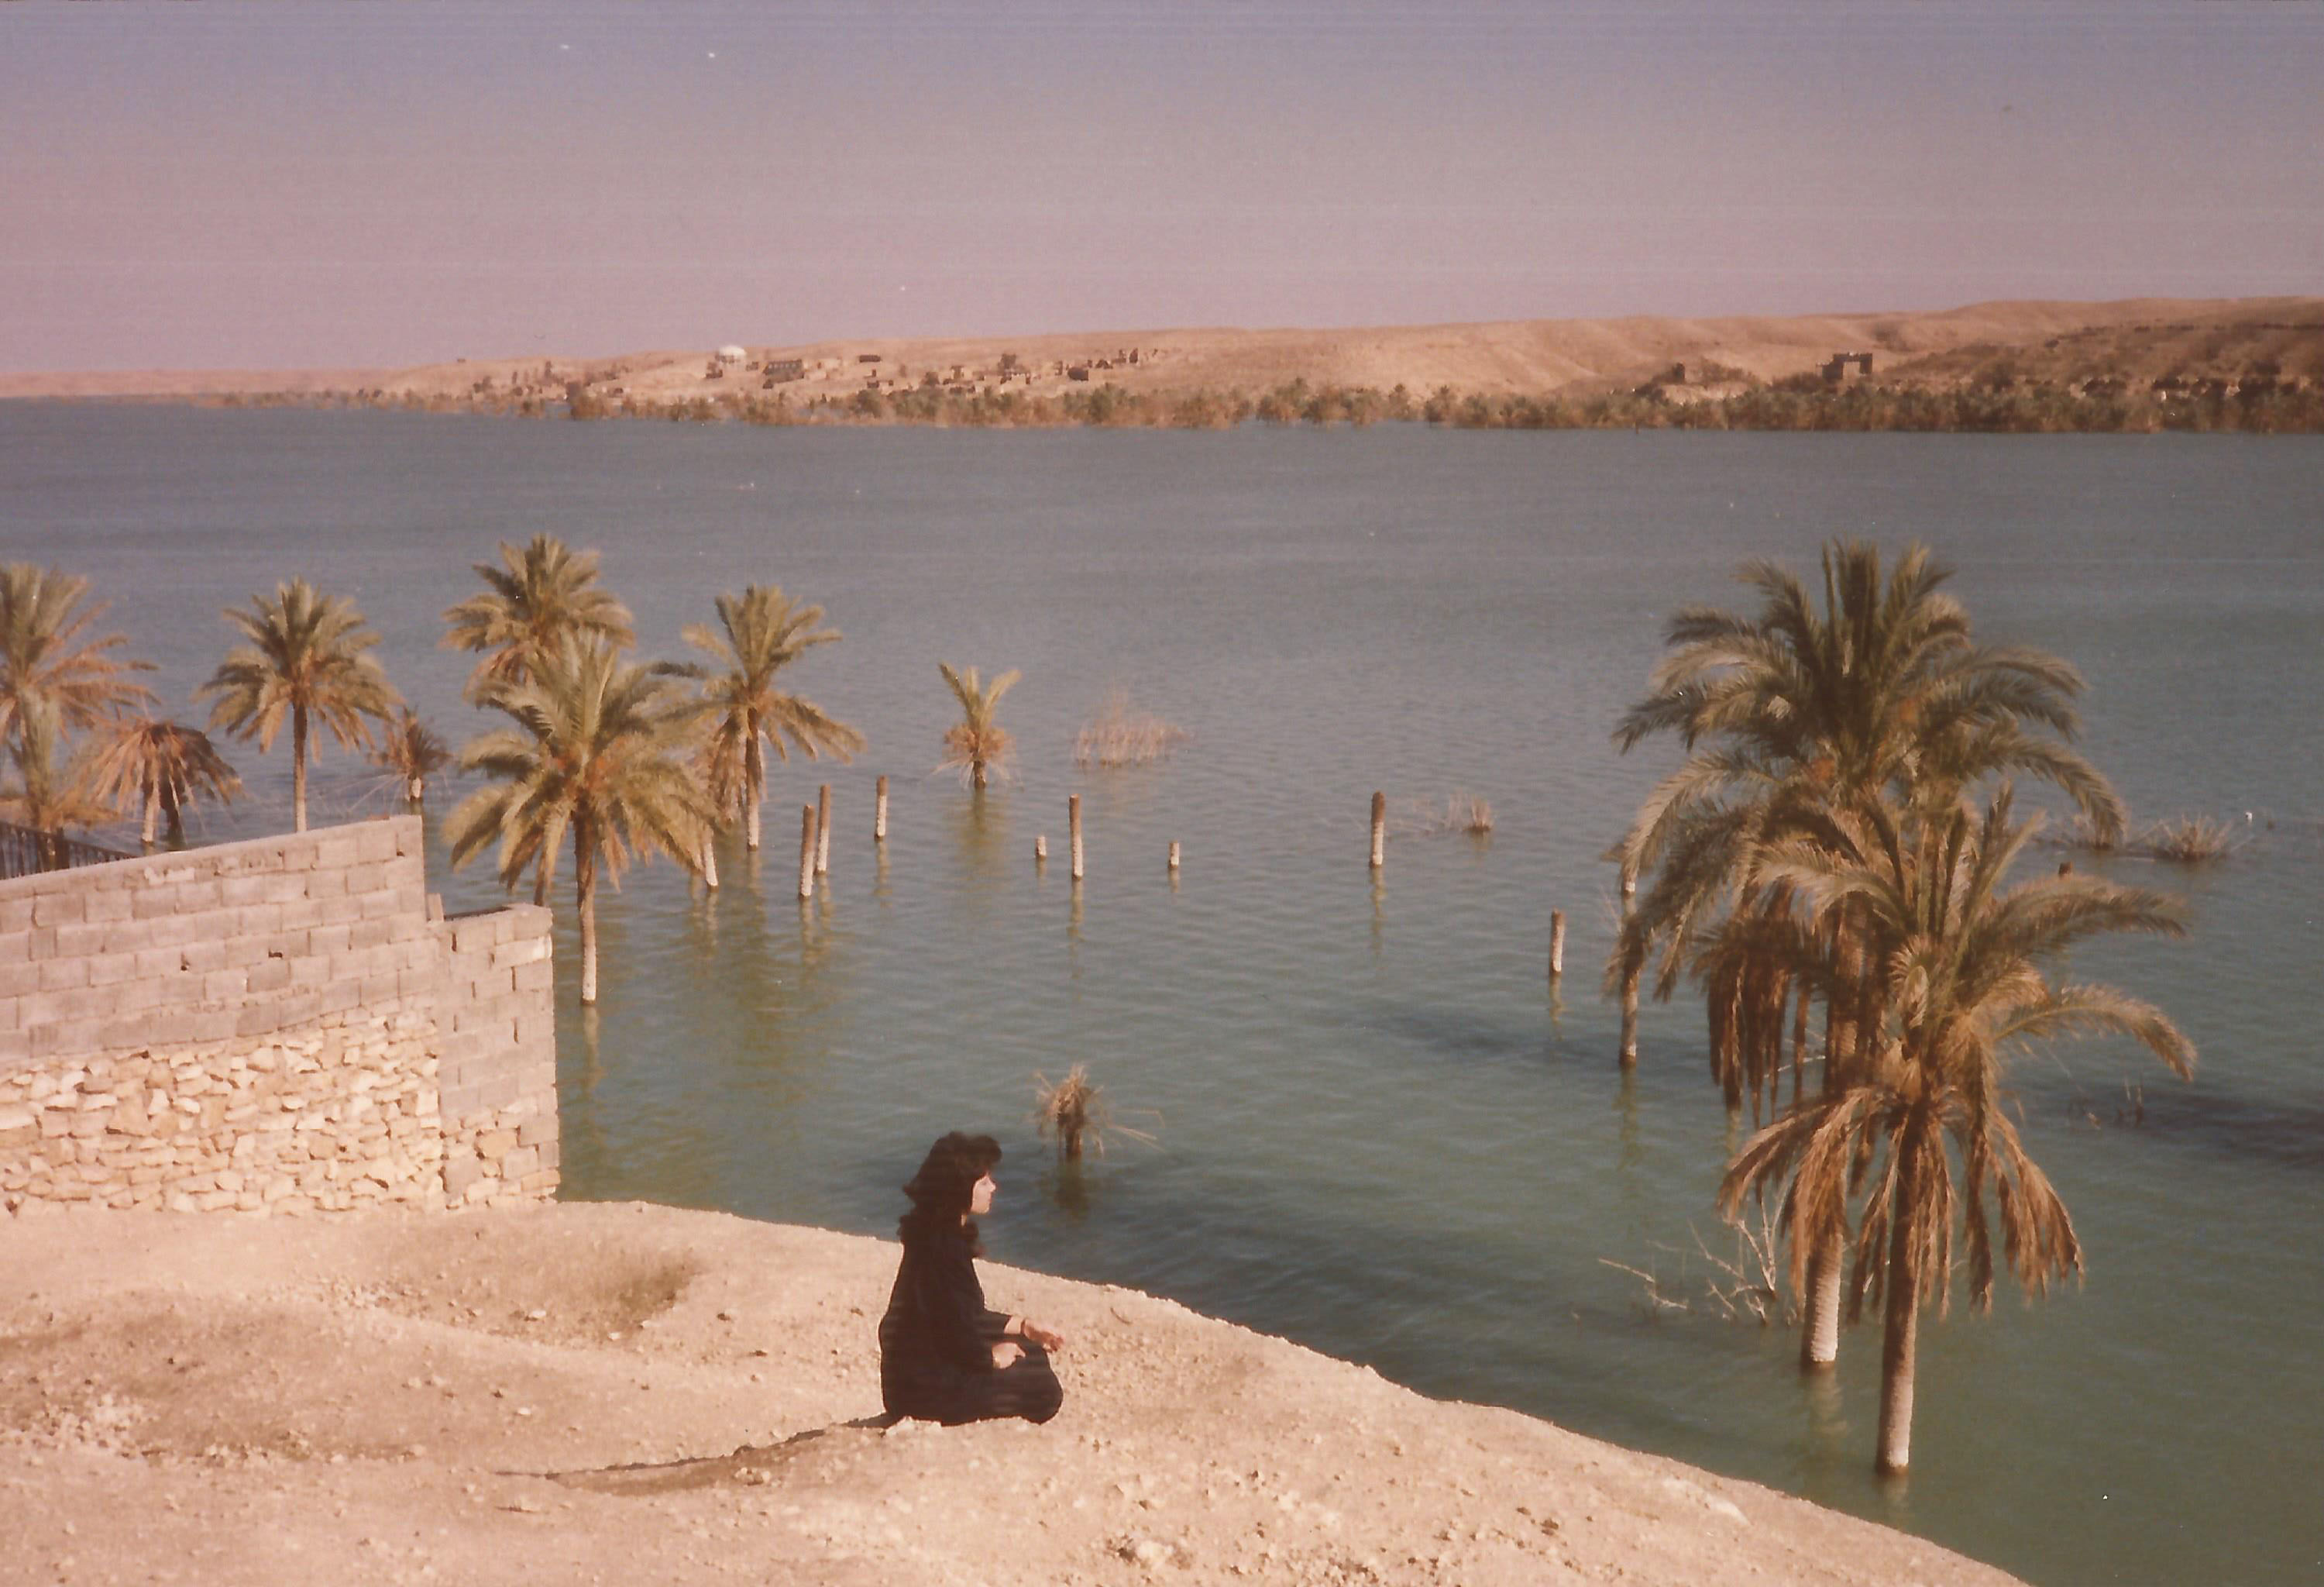 An image of a woman staring at a submerged Rawa in 1989 as submitted to the Iraq Photo Archive.